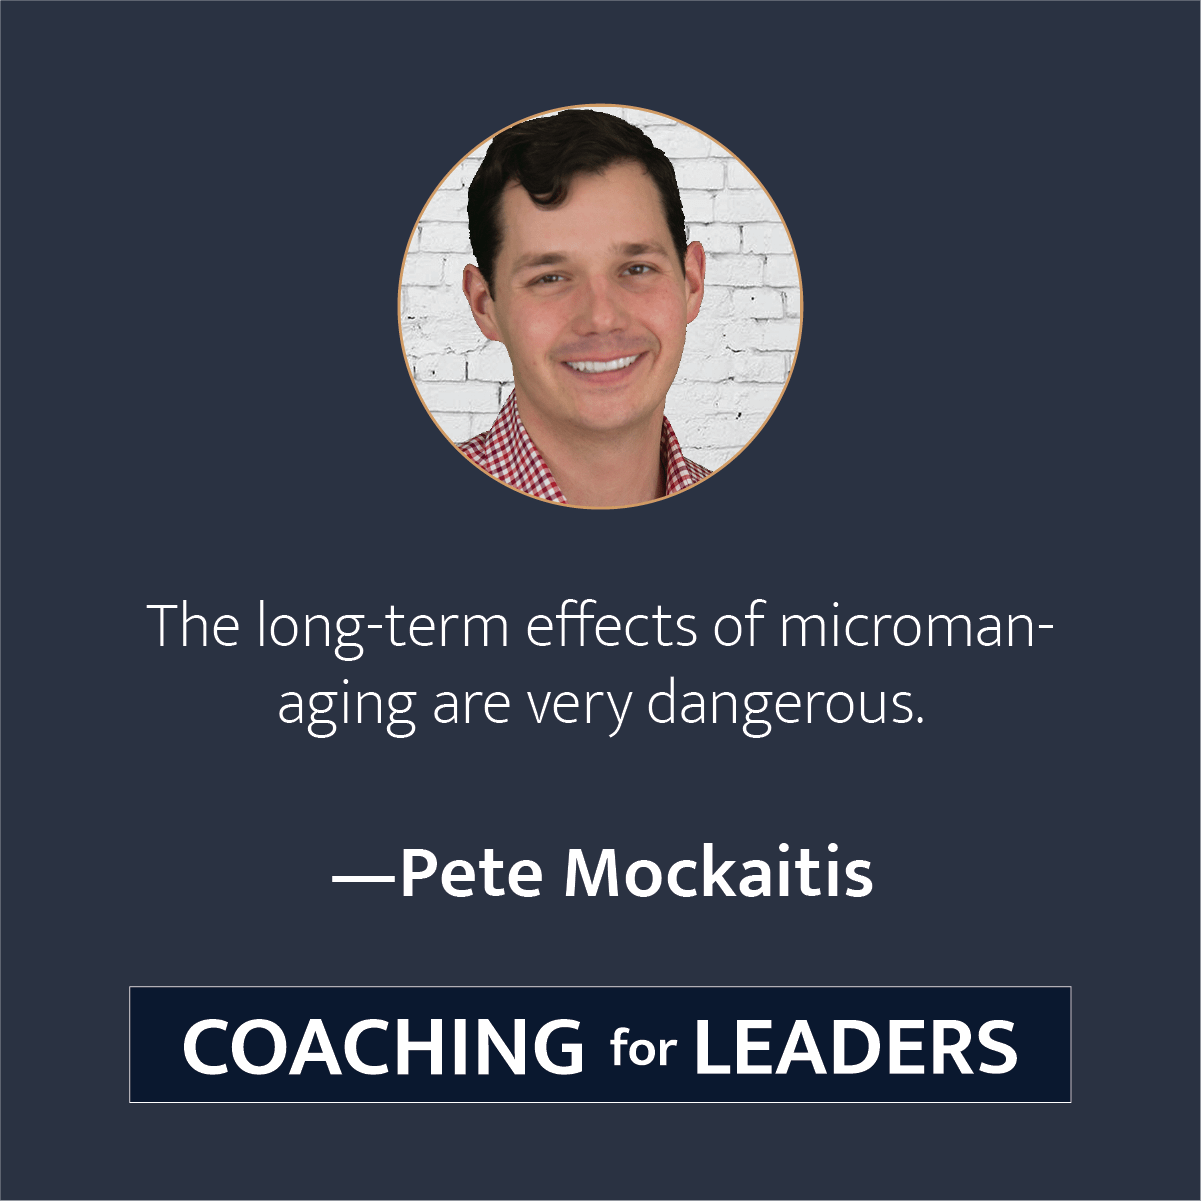 The long-term effects of micromanaging are very dangerous.